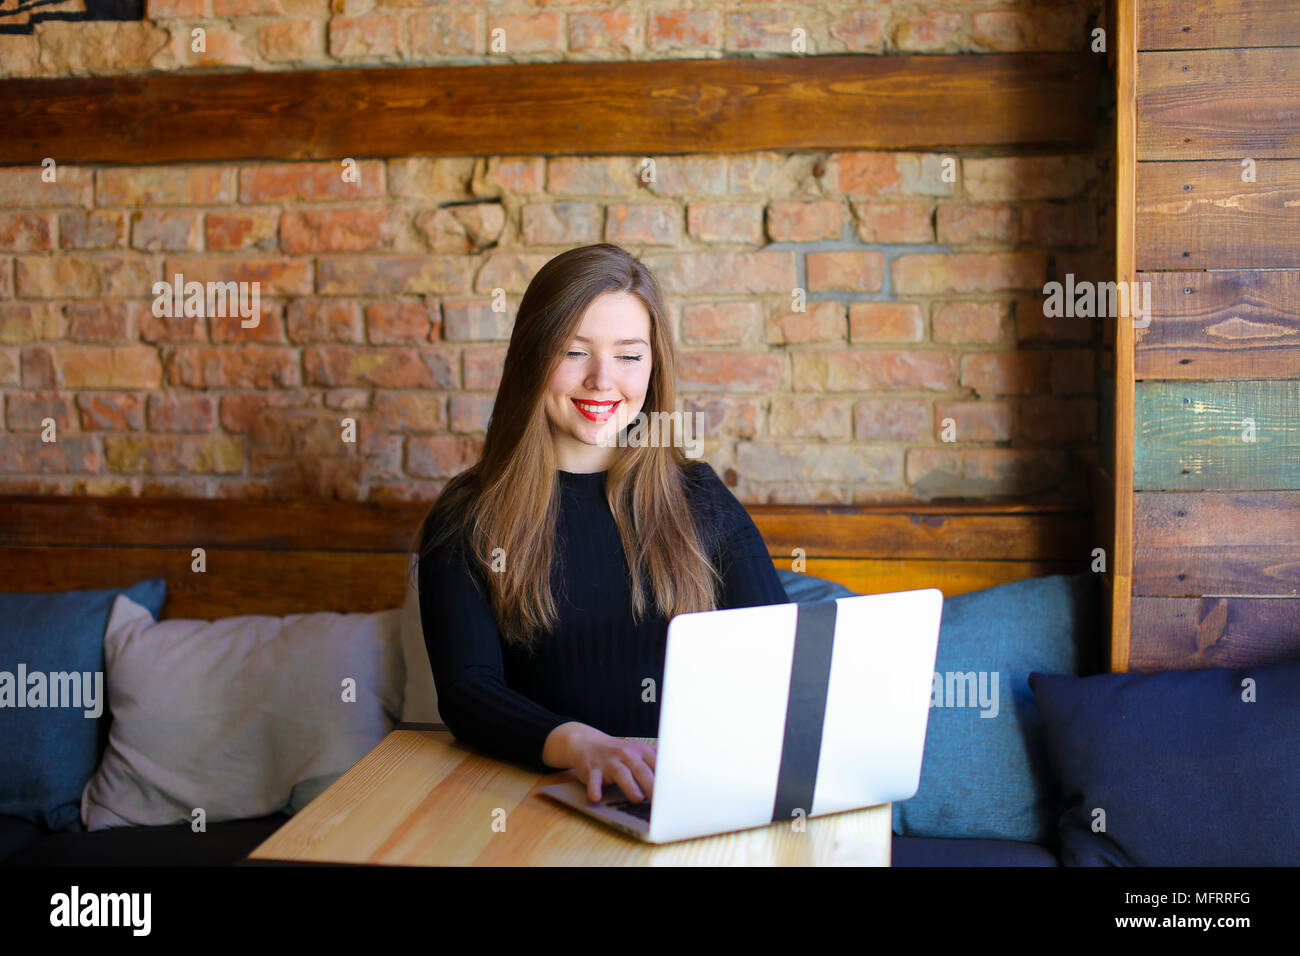 Smiling female person with red lips using laptop at cafe. - Stock Image